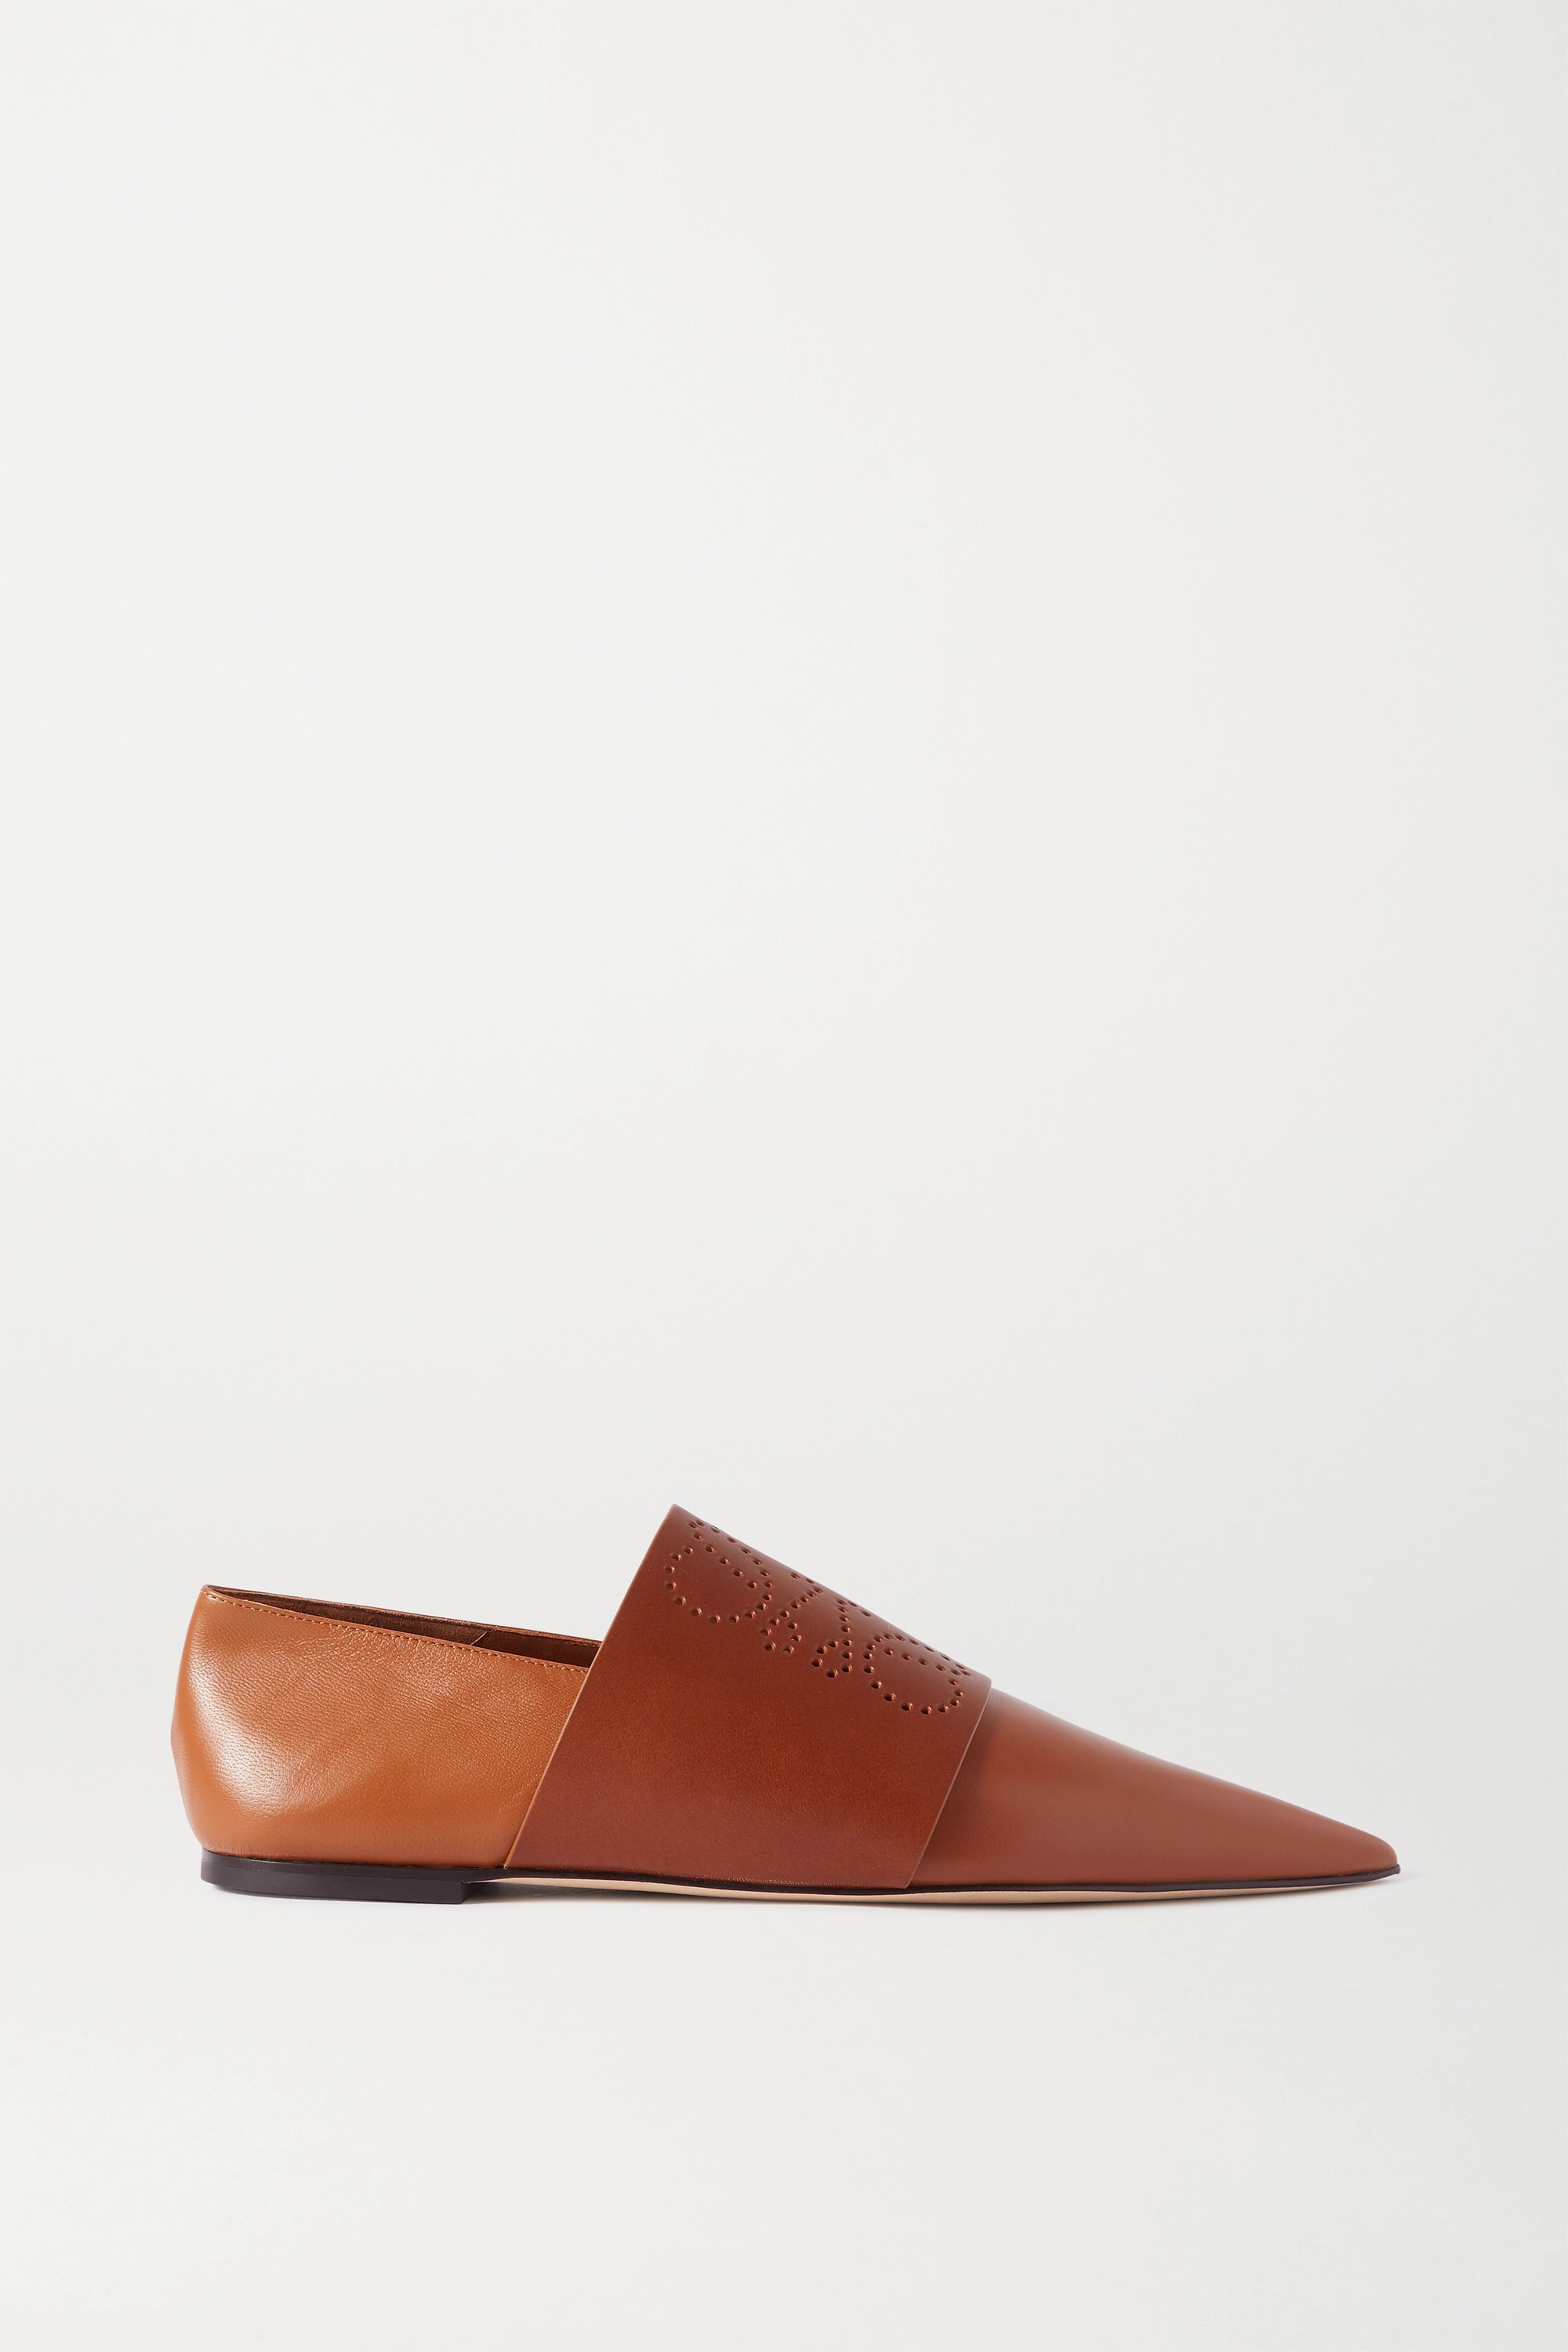 Loewe Perforated leather loafers